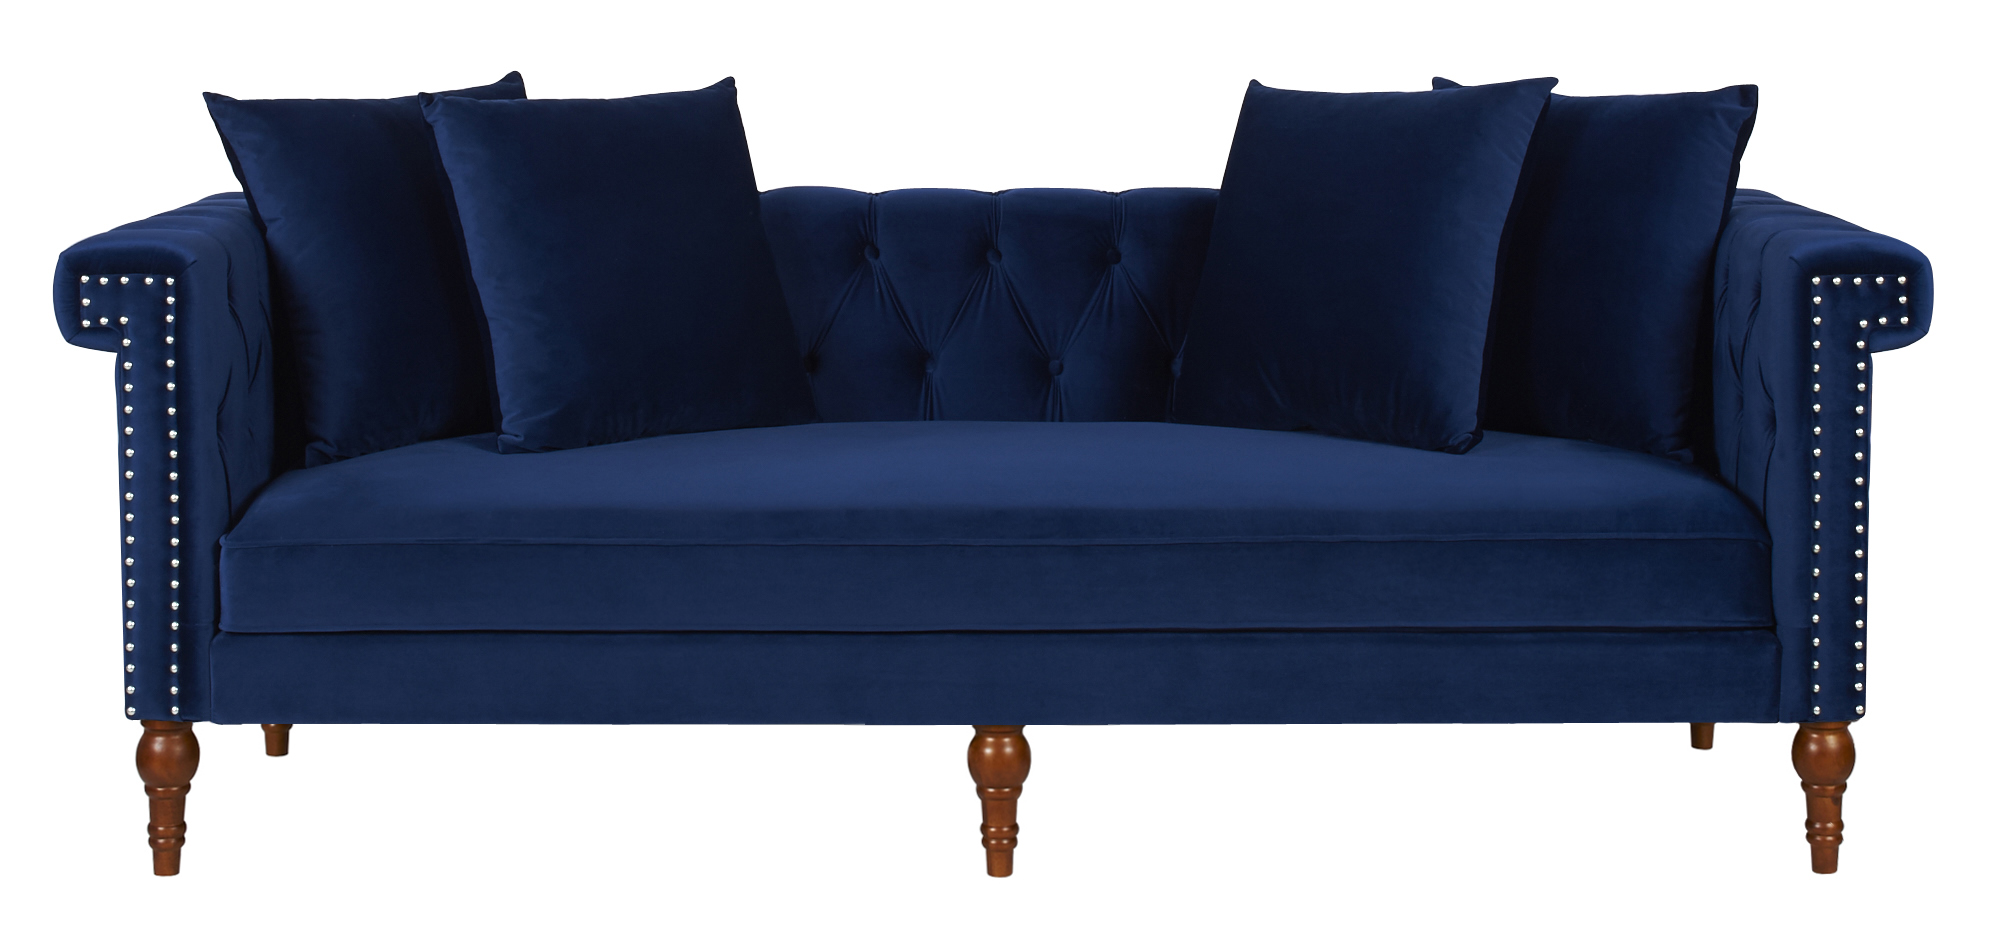 Chesterfield Sofa Navy Fabric Wooden Chesterfield Sofa – Navy Blue